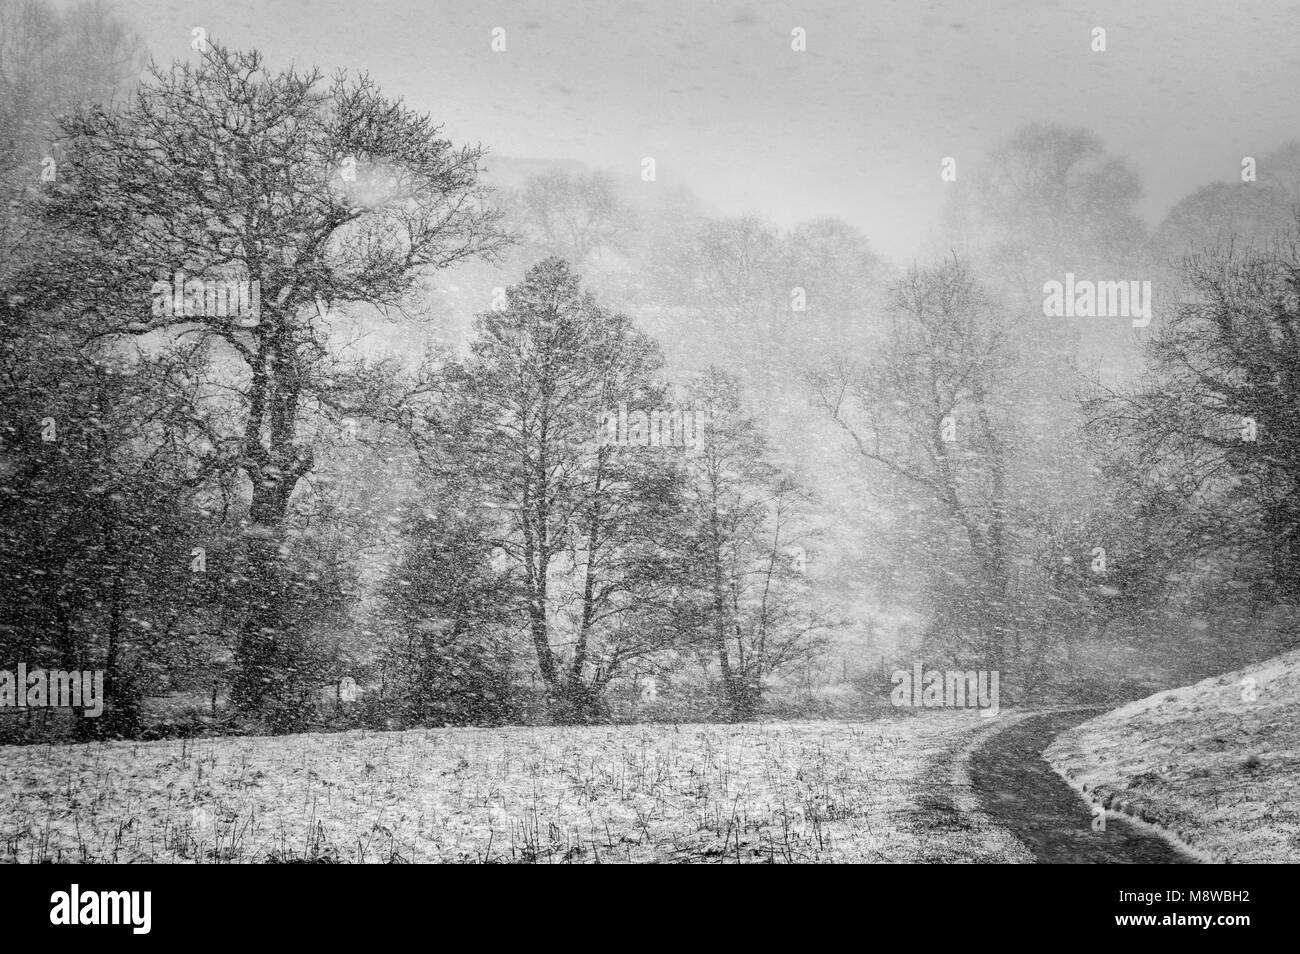 Blizzard near Milldale, Dove Valley, Peak District National Park, Derbyshire Stock Photo